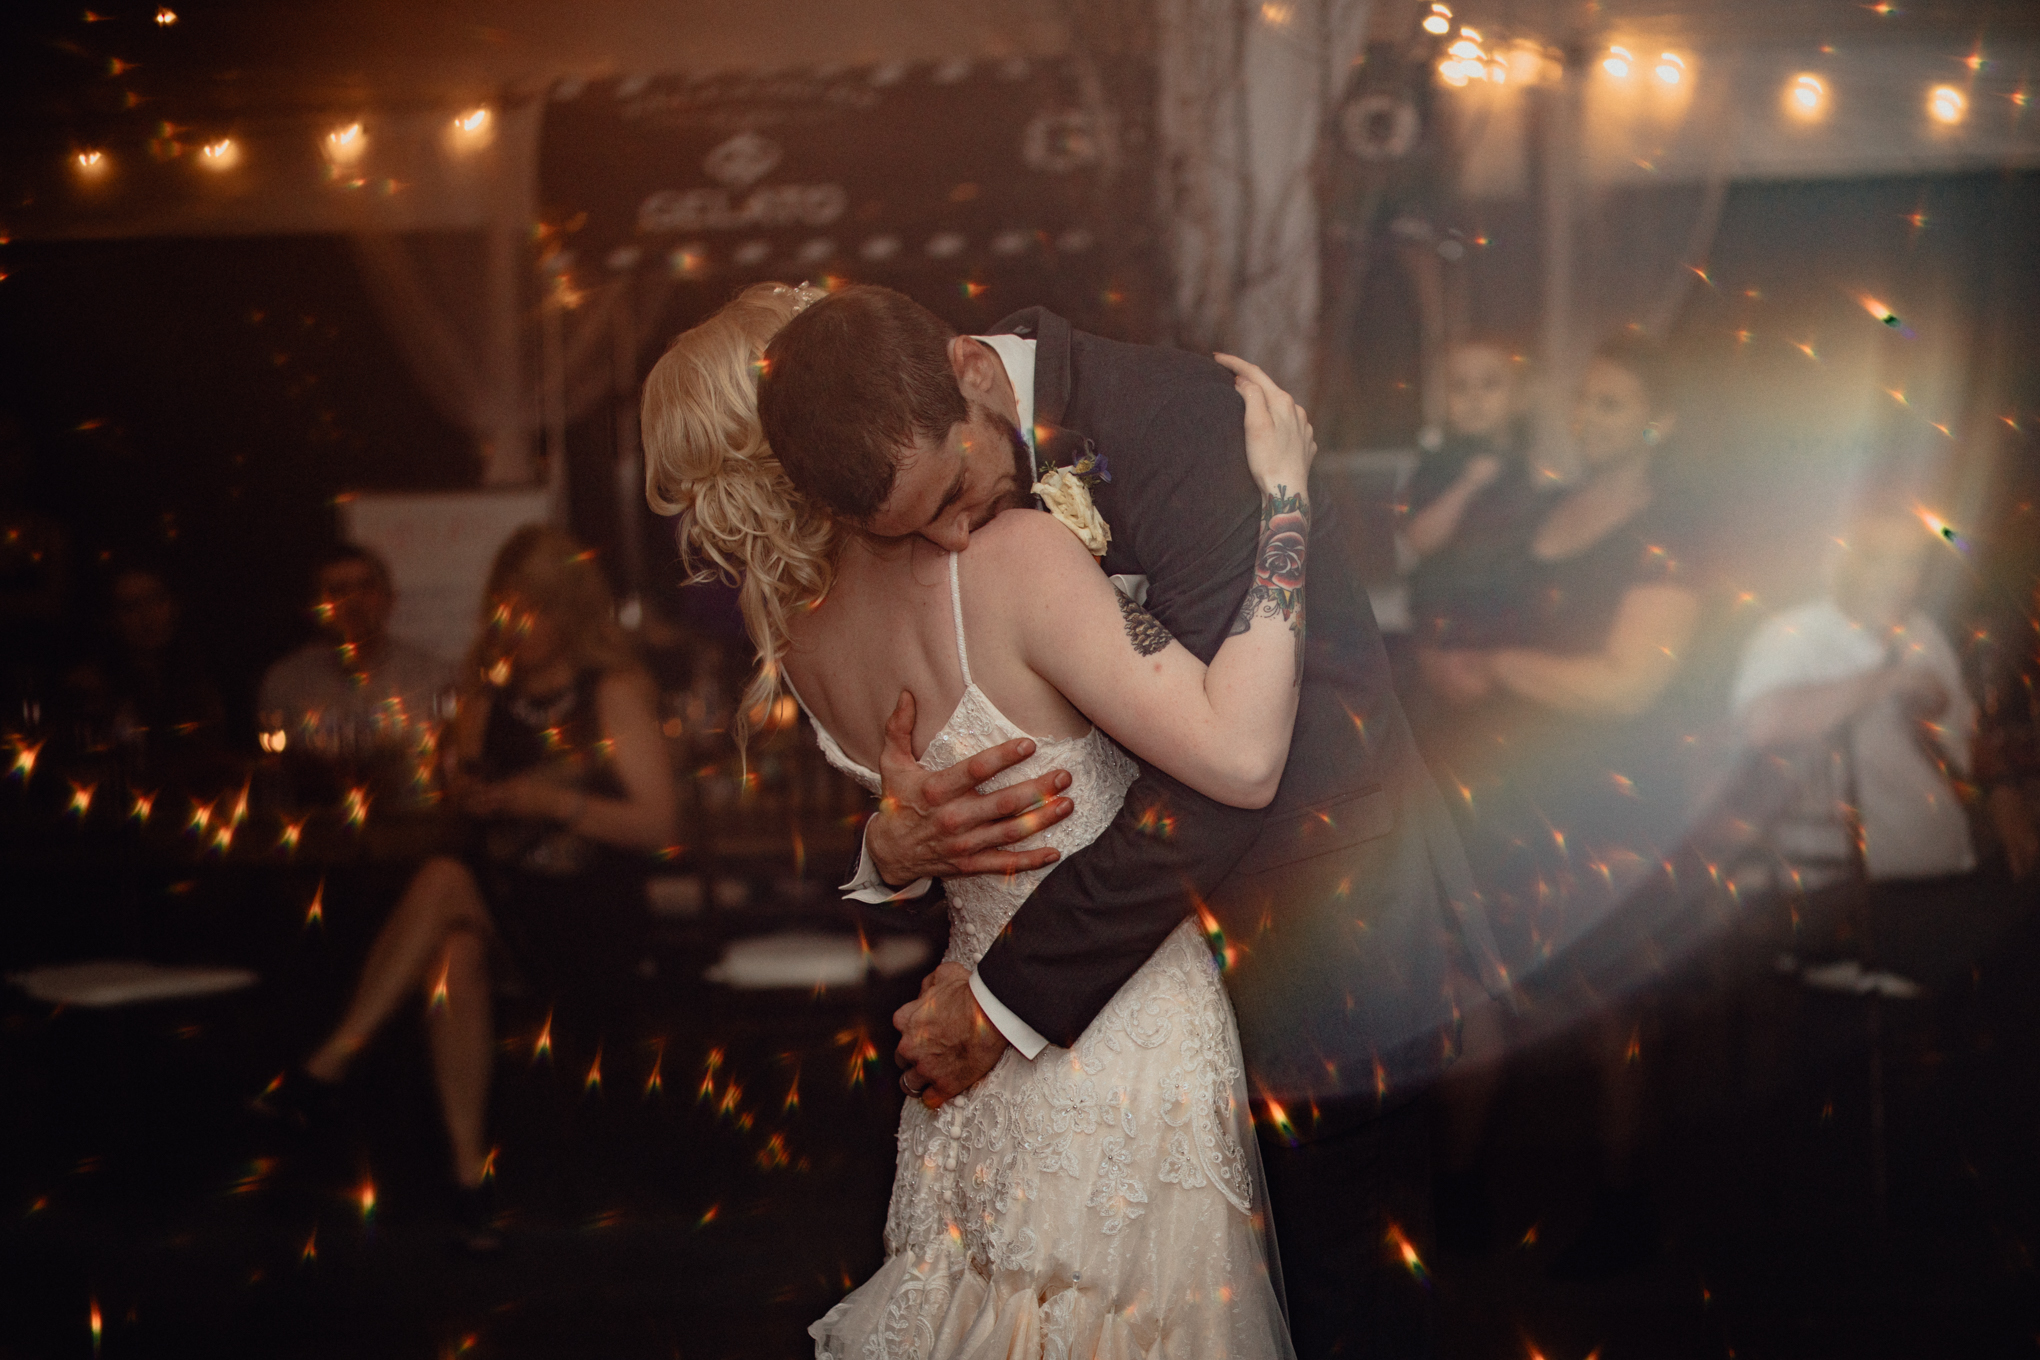 bride and groom share first dance at reception at oak hill weddings rainbow flare